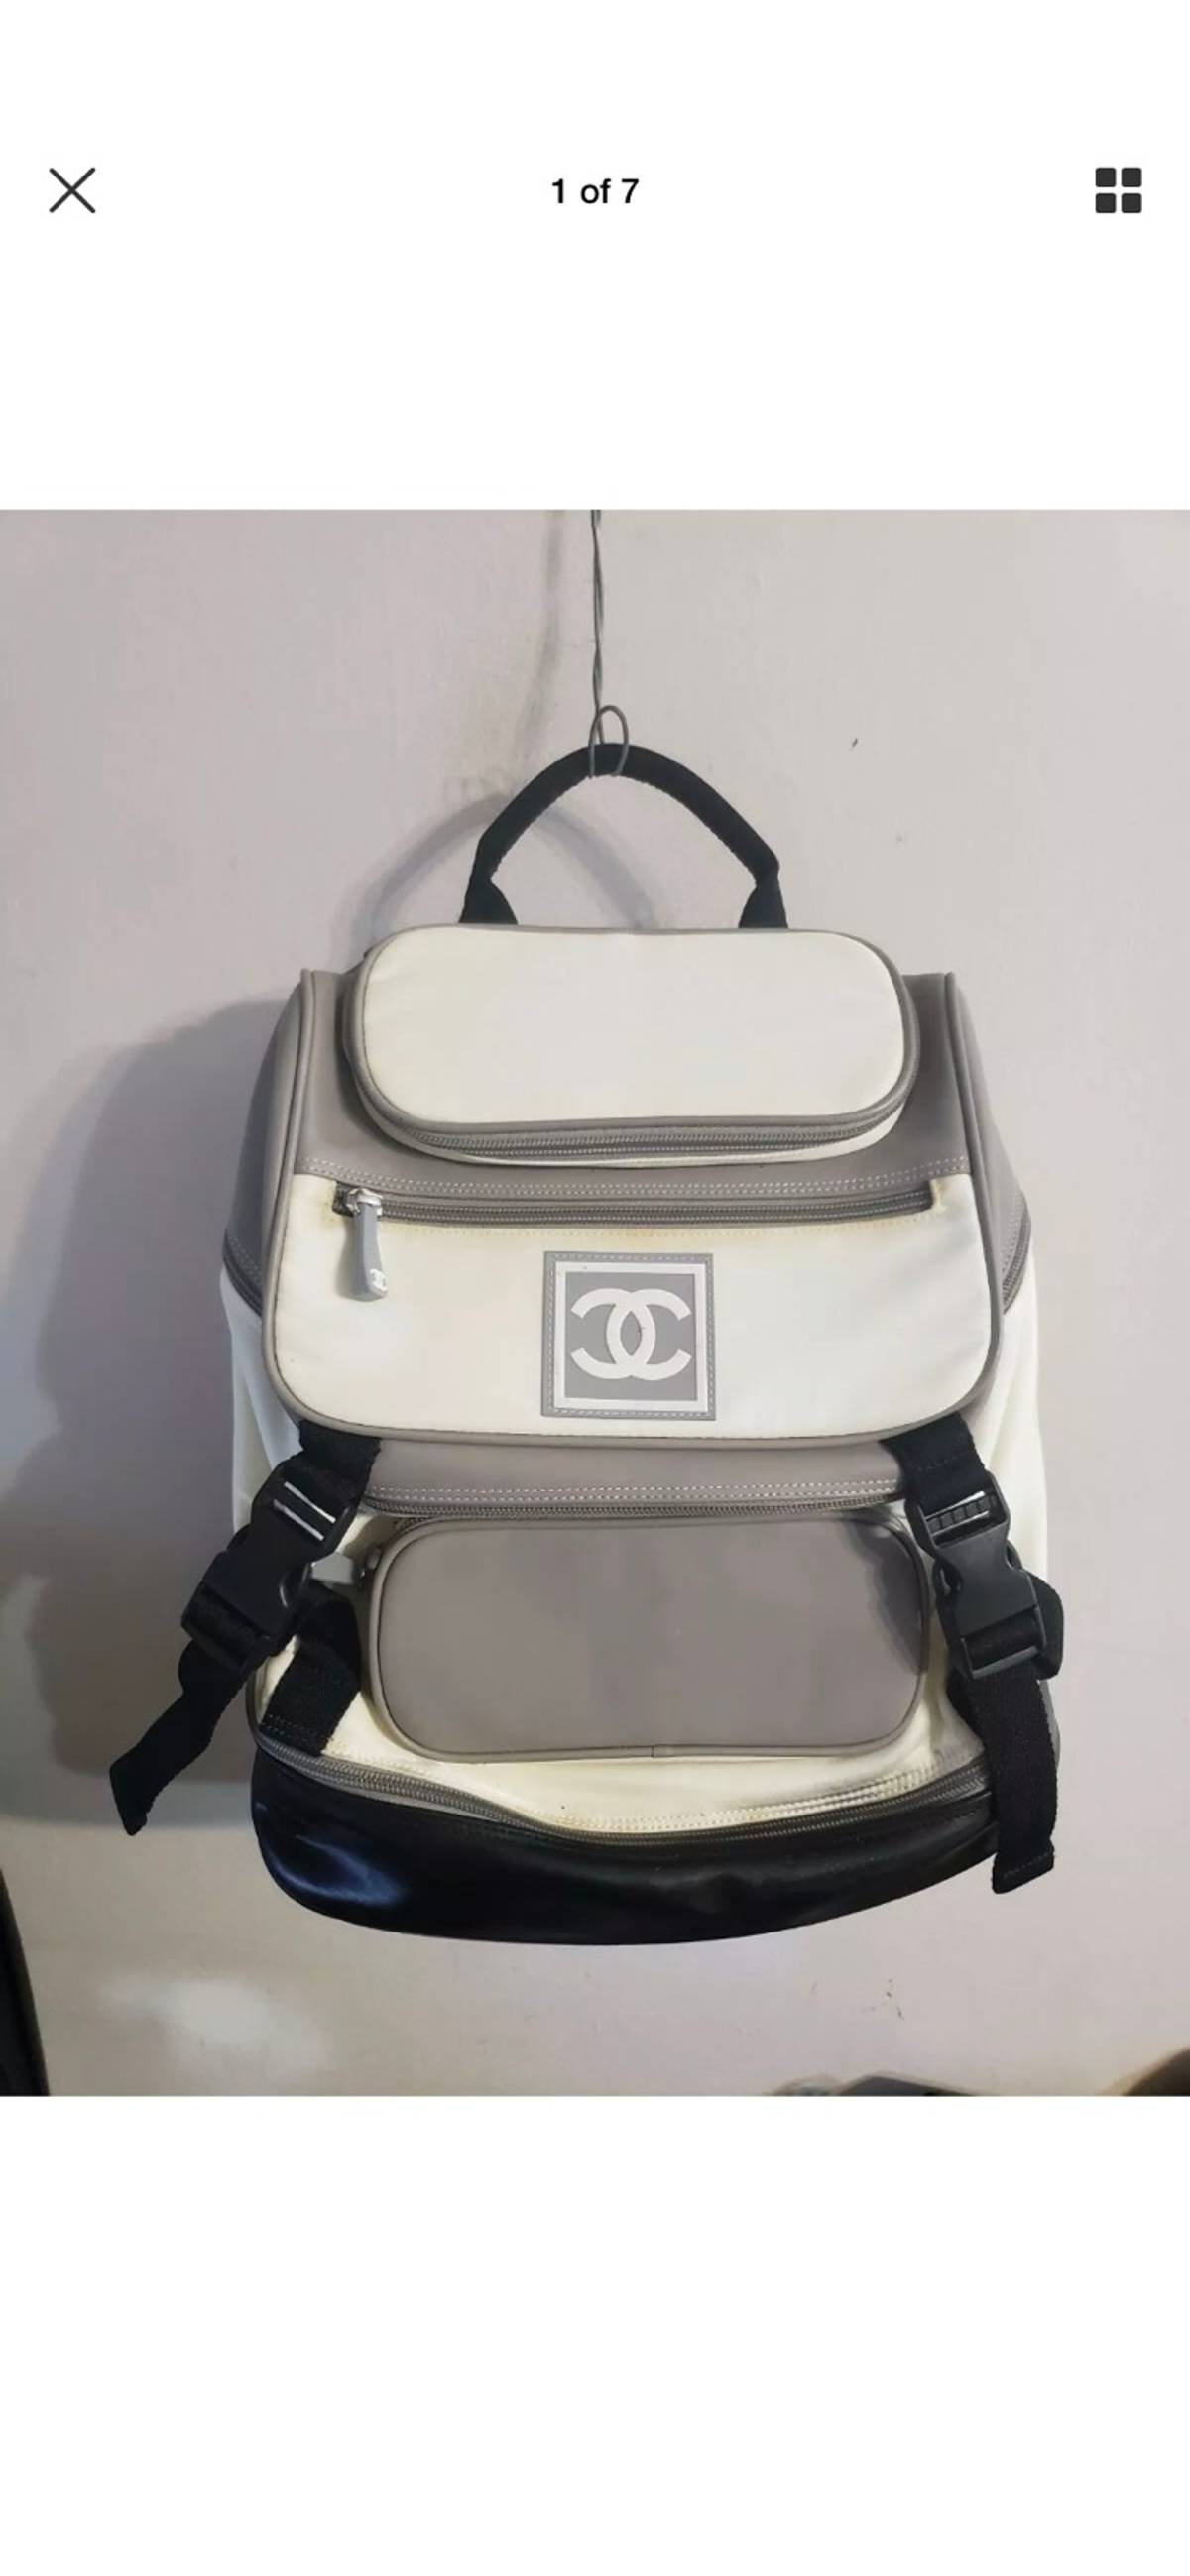 0a7b85d5a Chanel Vintage Chanel Sport Backpack | Grailed